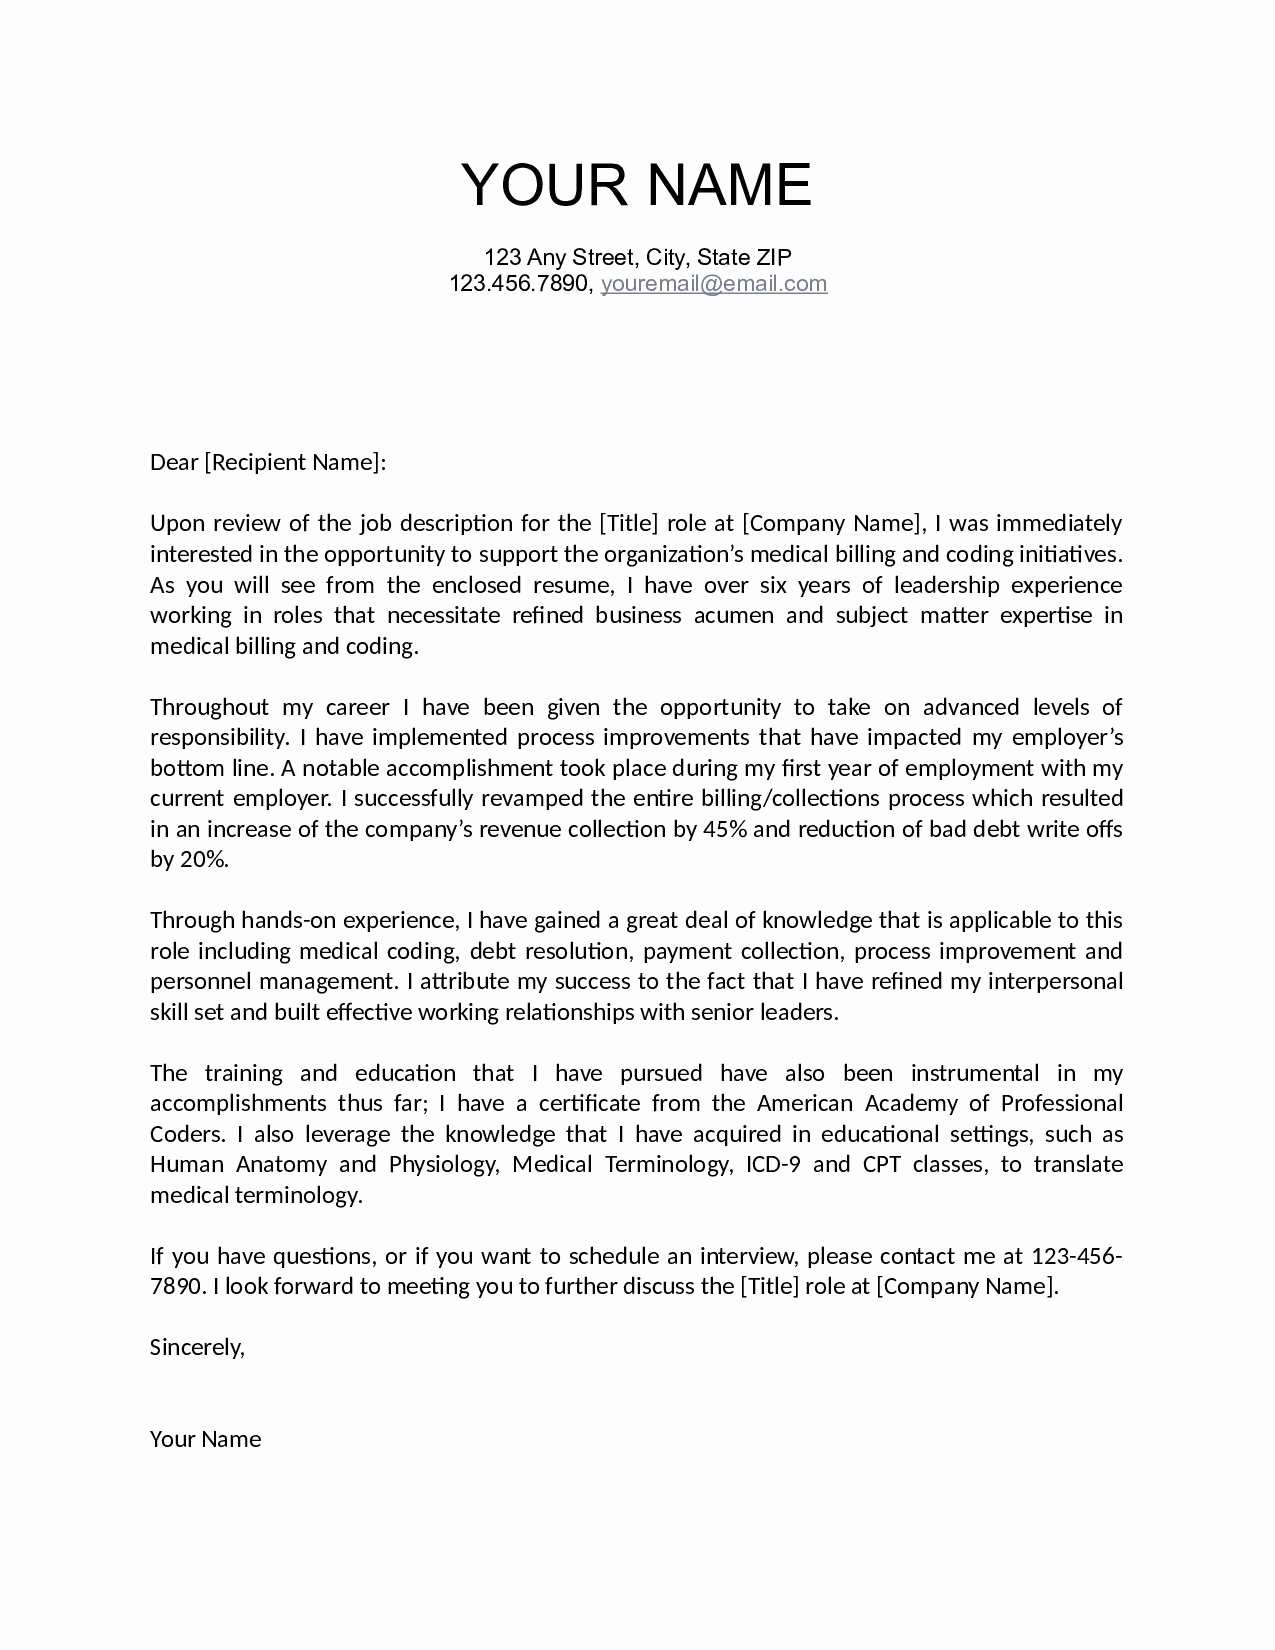 Wedding Welcome Letter Template Word - Inspirational Basic Cover Letter Template